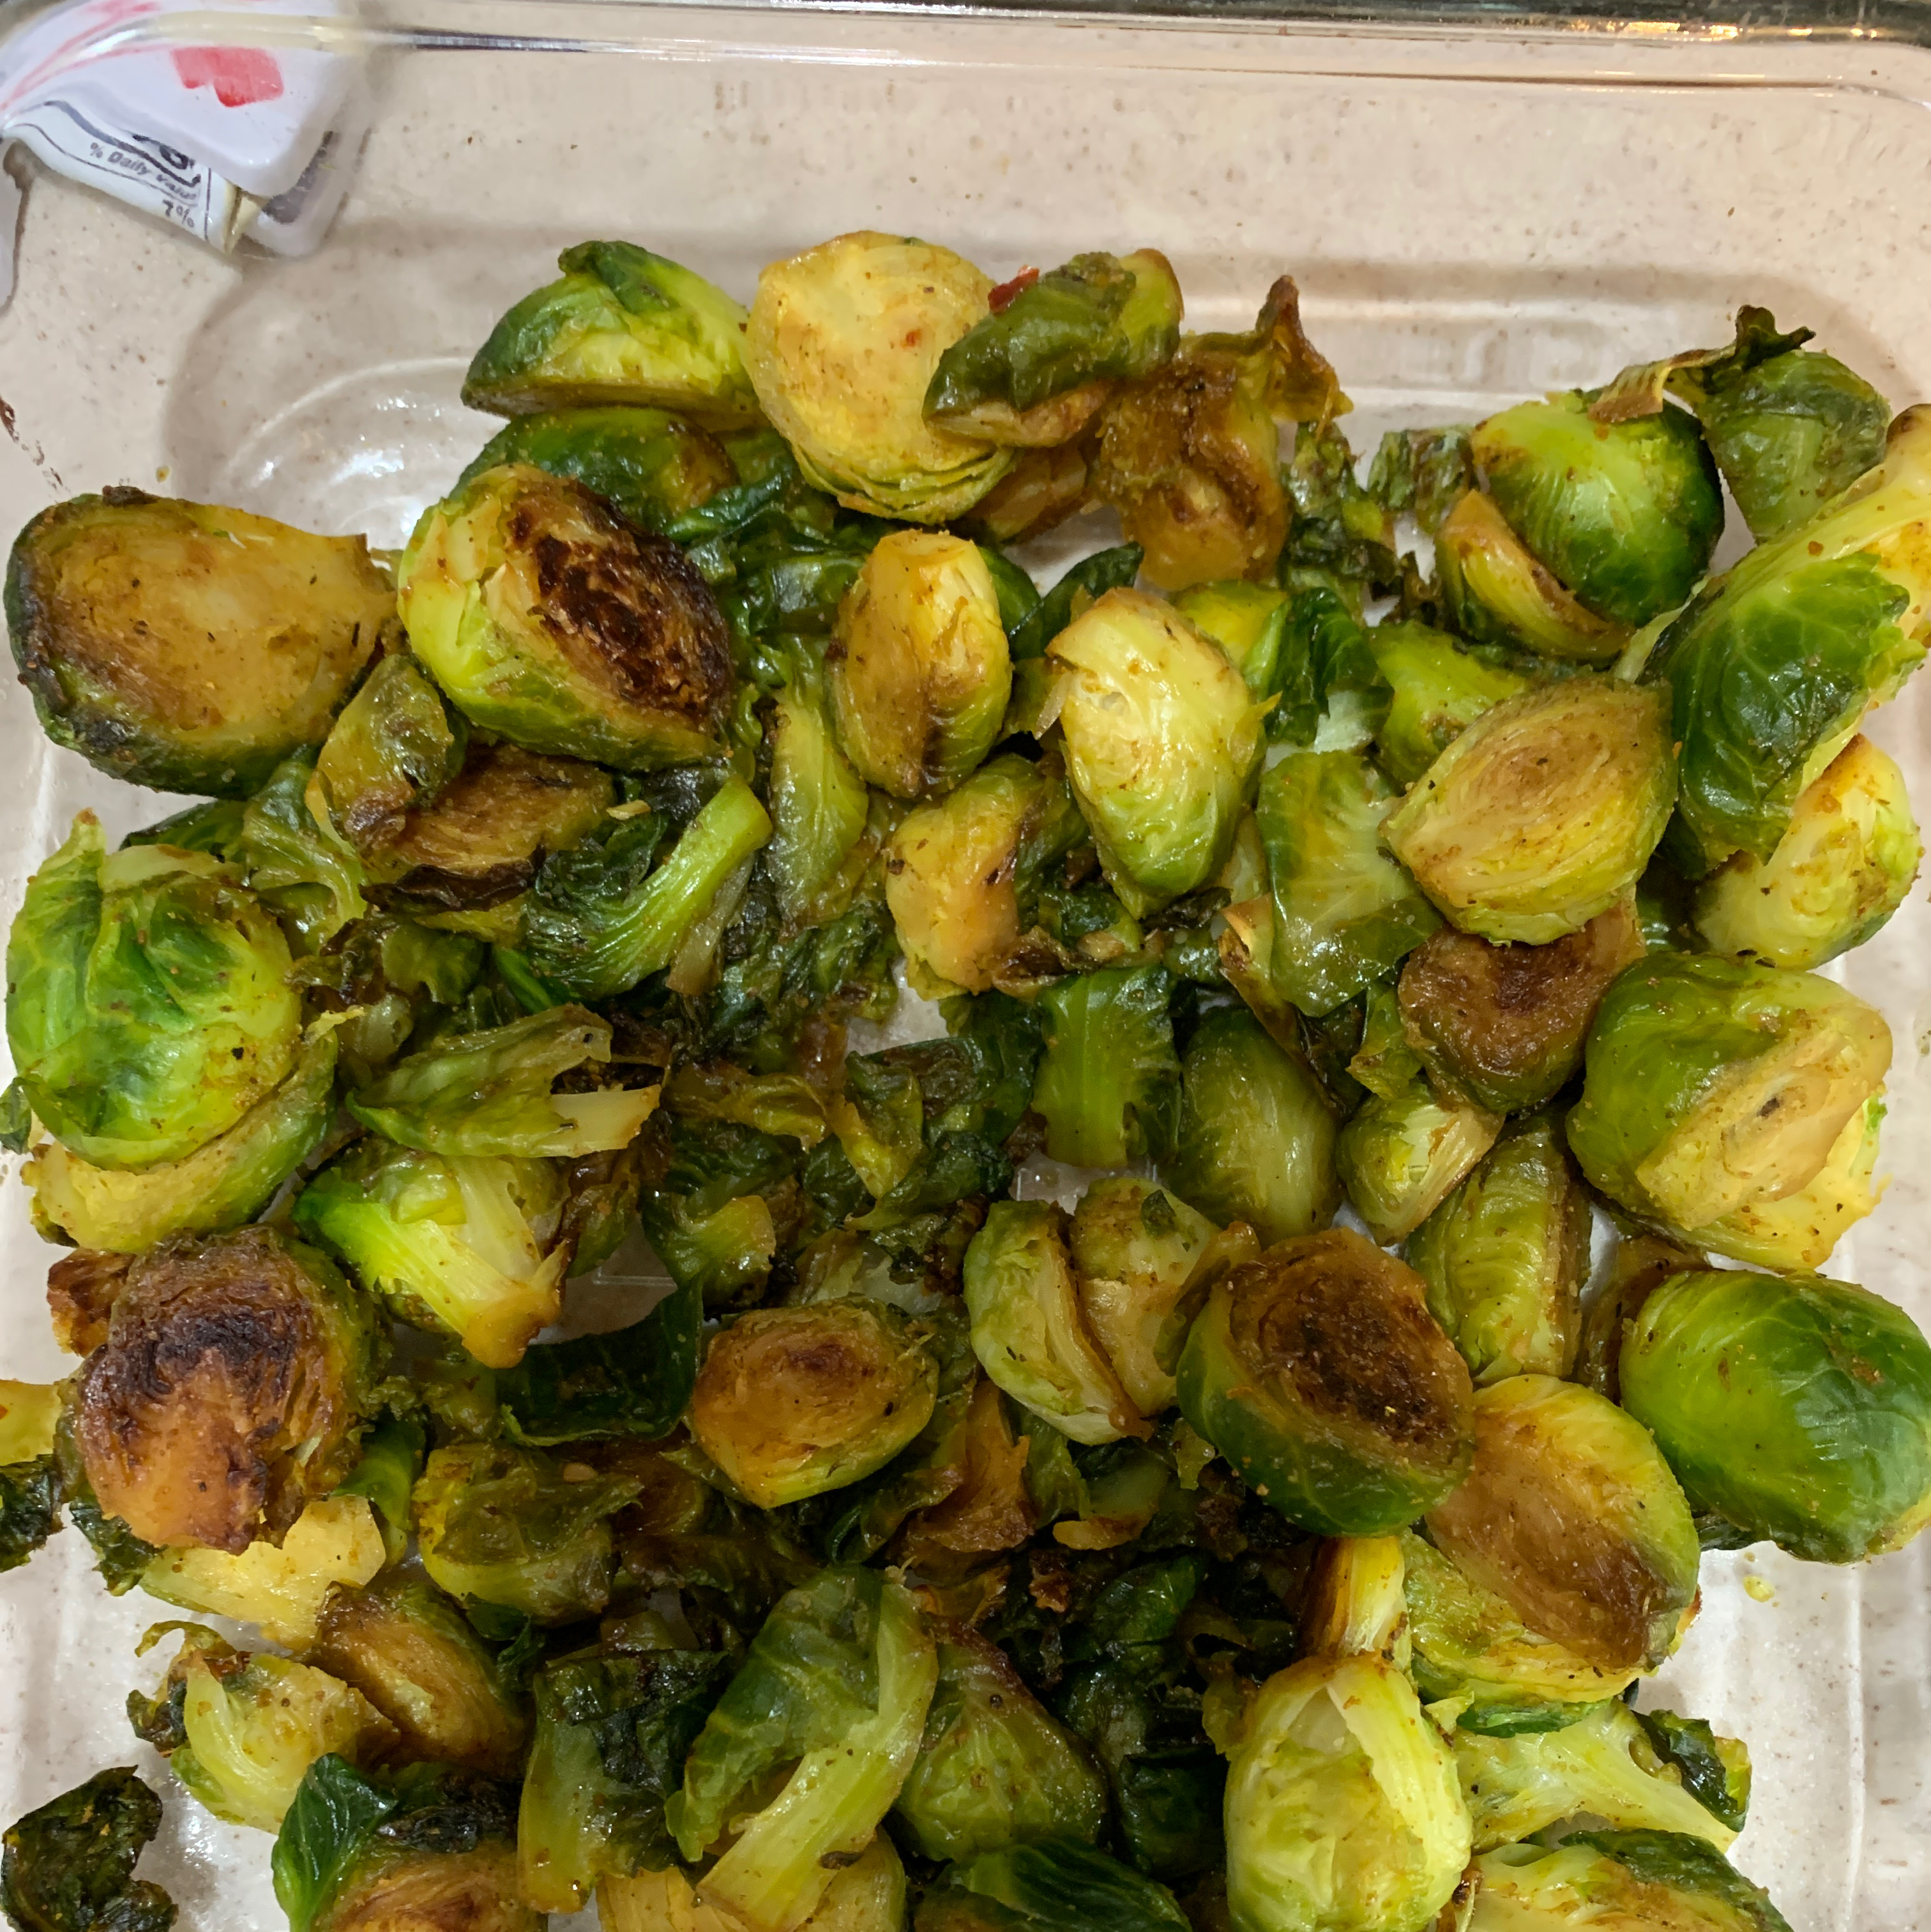 Charlie's Sweet Island Brussels Sprouts